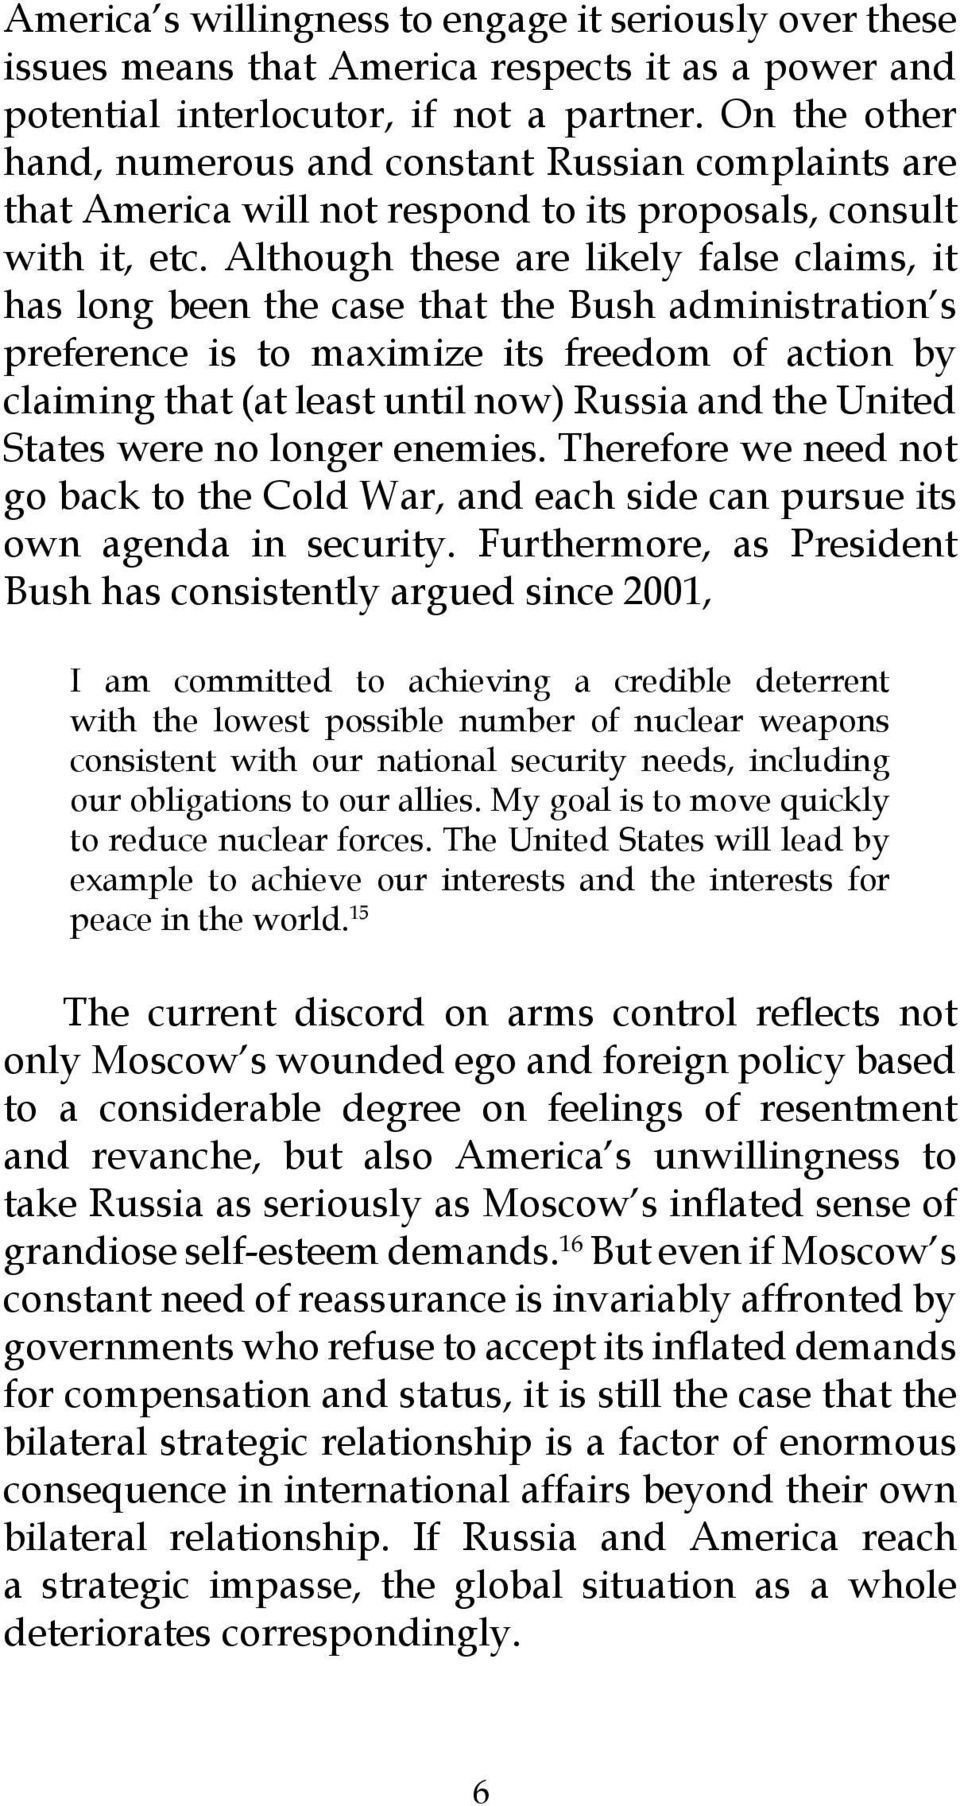 Although these are likely false claims, it has long been the case that the Bush administration s preference is to maximize its freedom of action by claiming that (at least until now) Russia and the